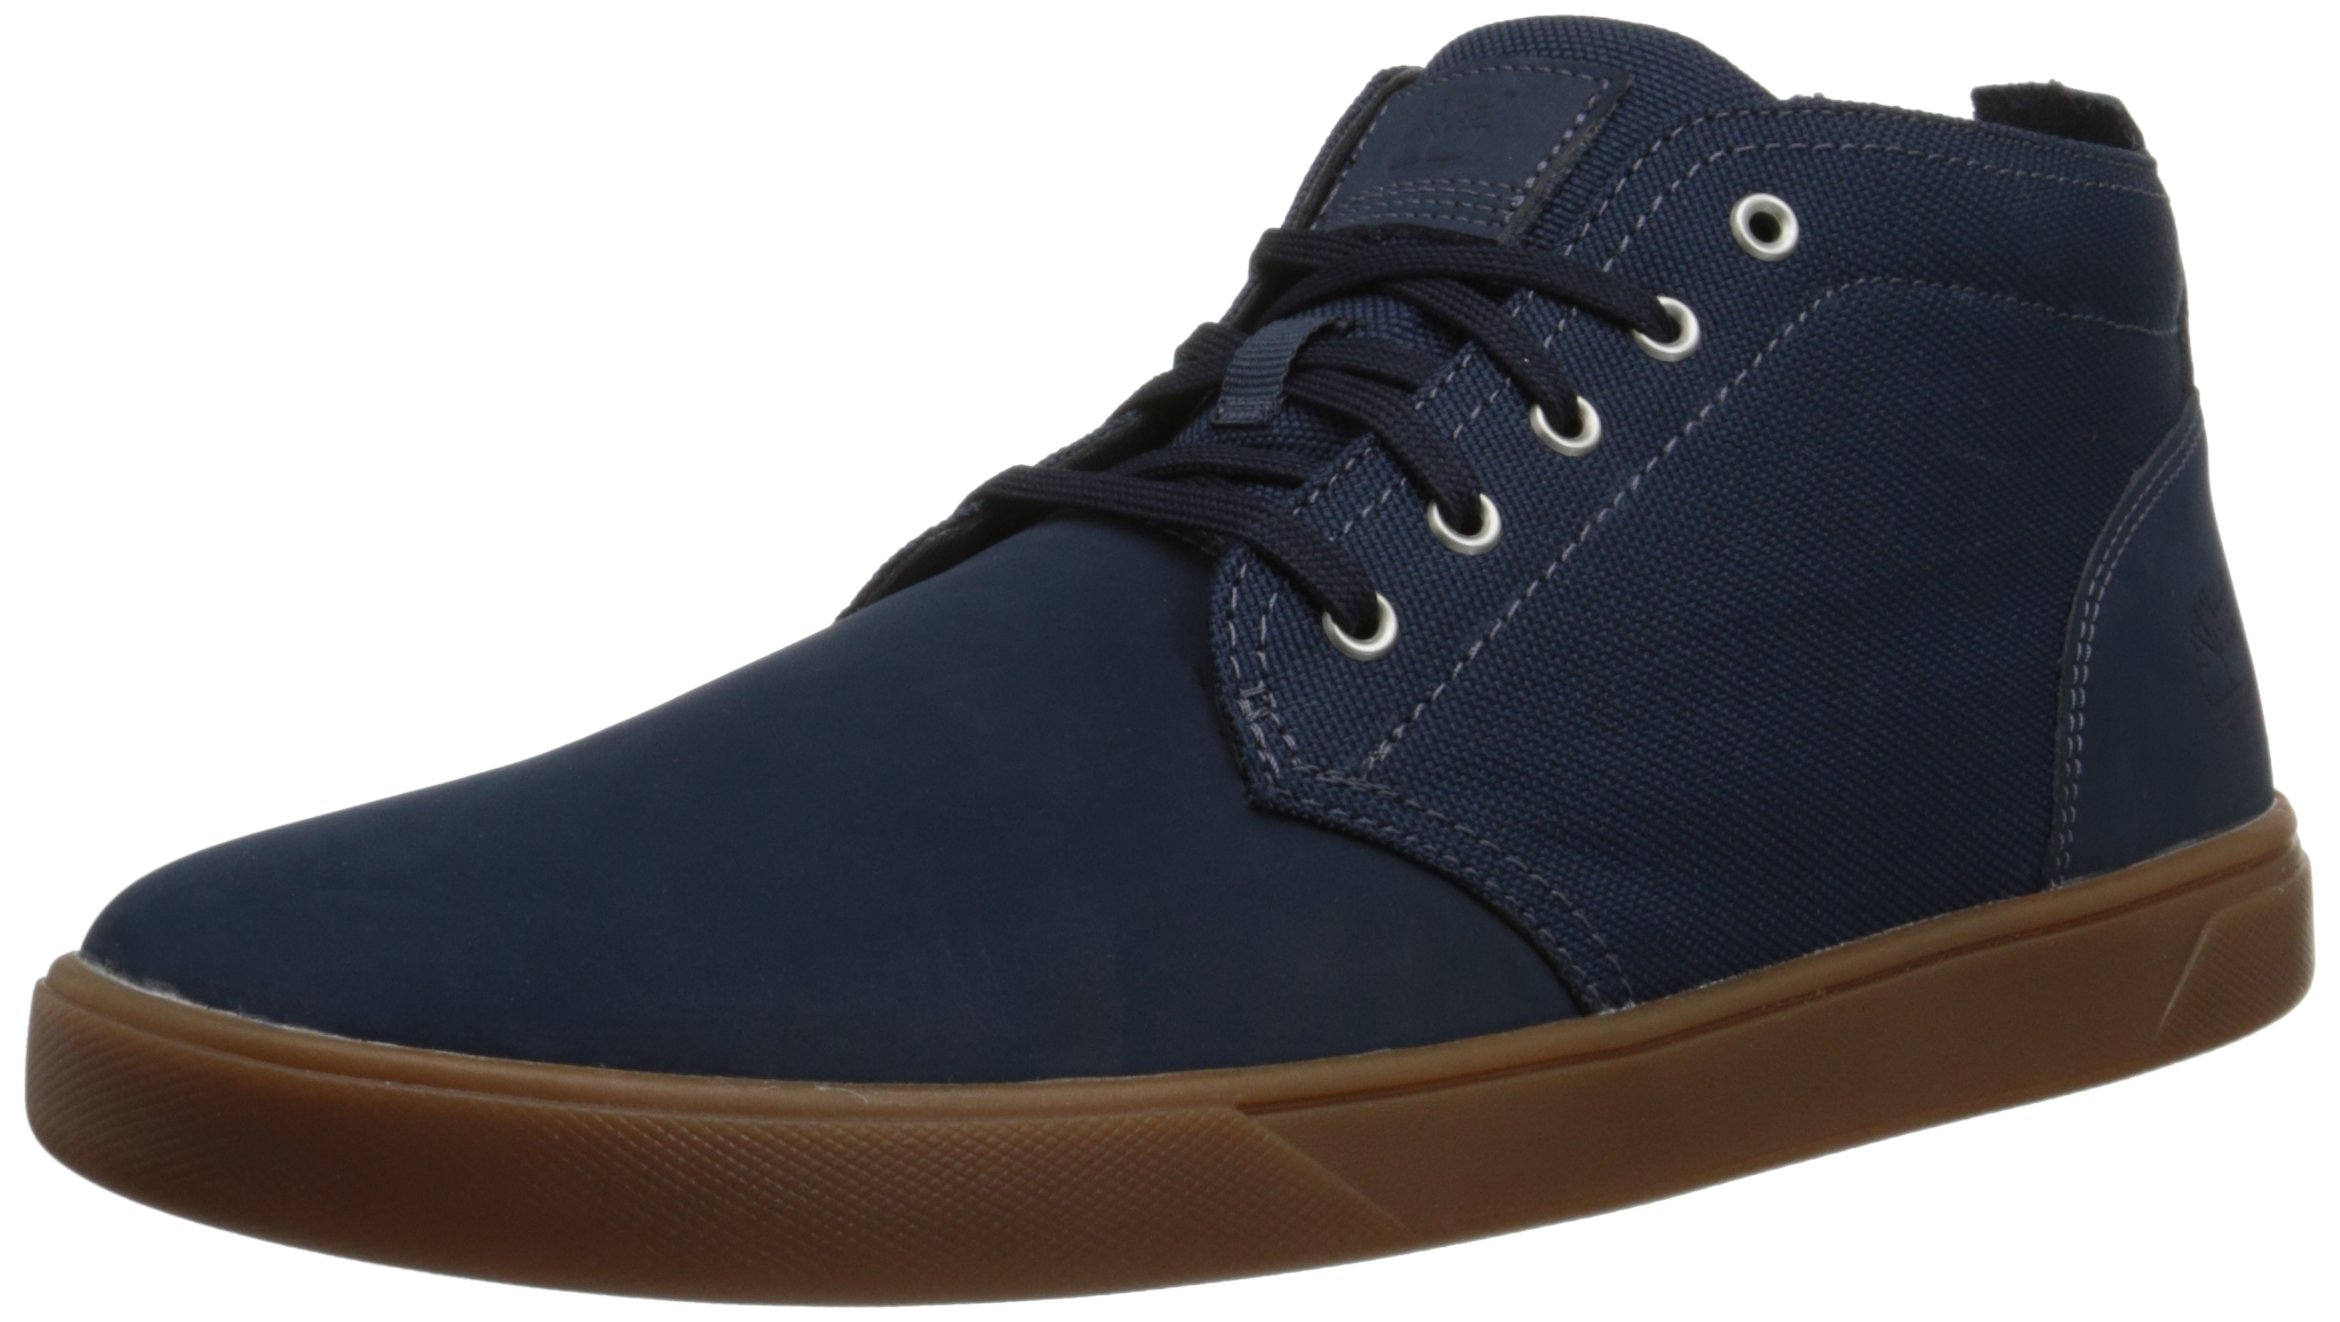 58c371636db Galleon - Timberland Men's Groveton Leather Fabric Chukka Boot, Navy ...